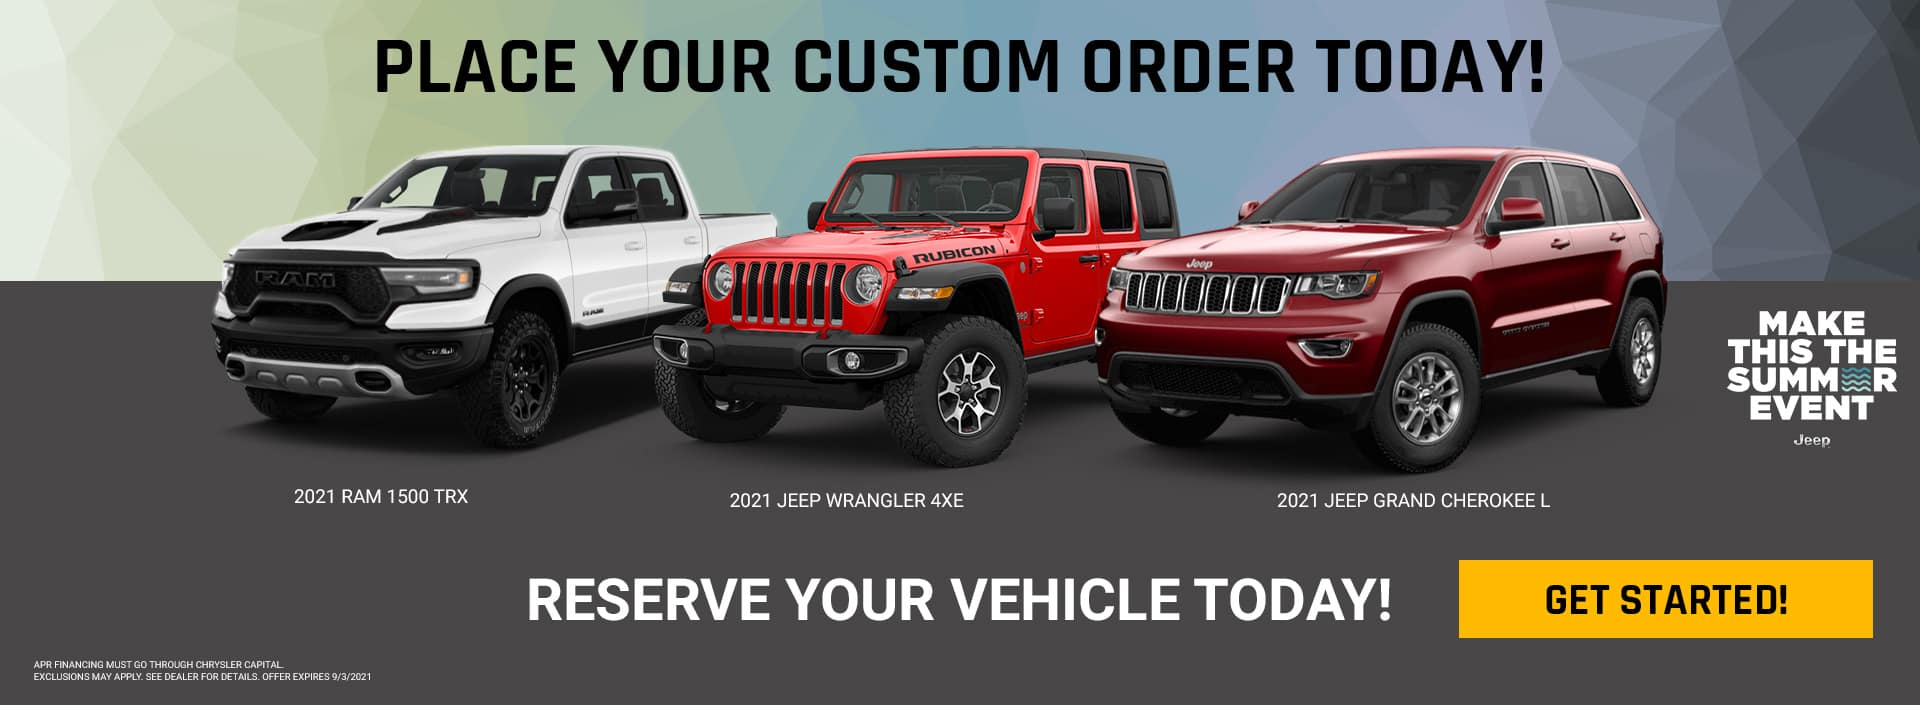 Place your custom order today!